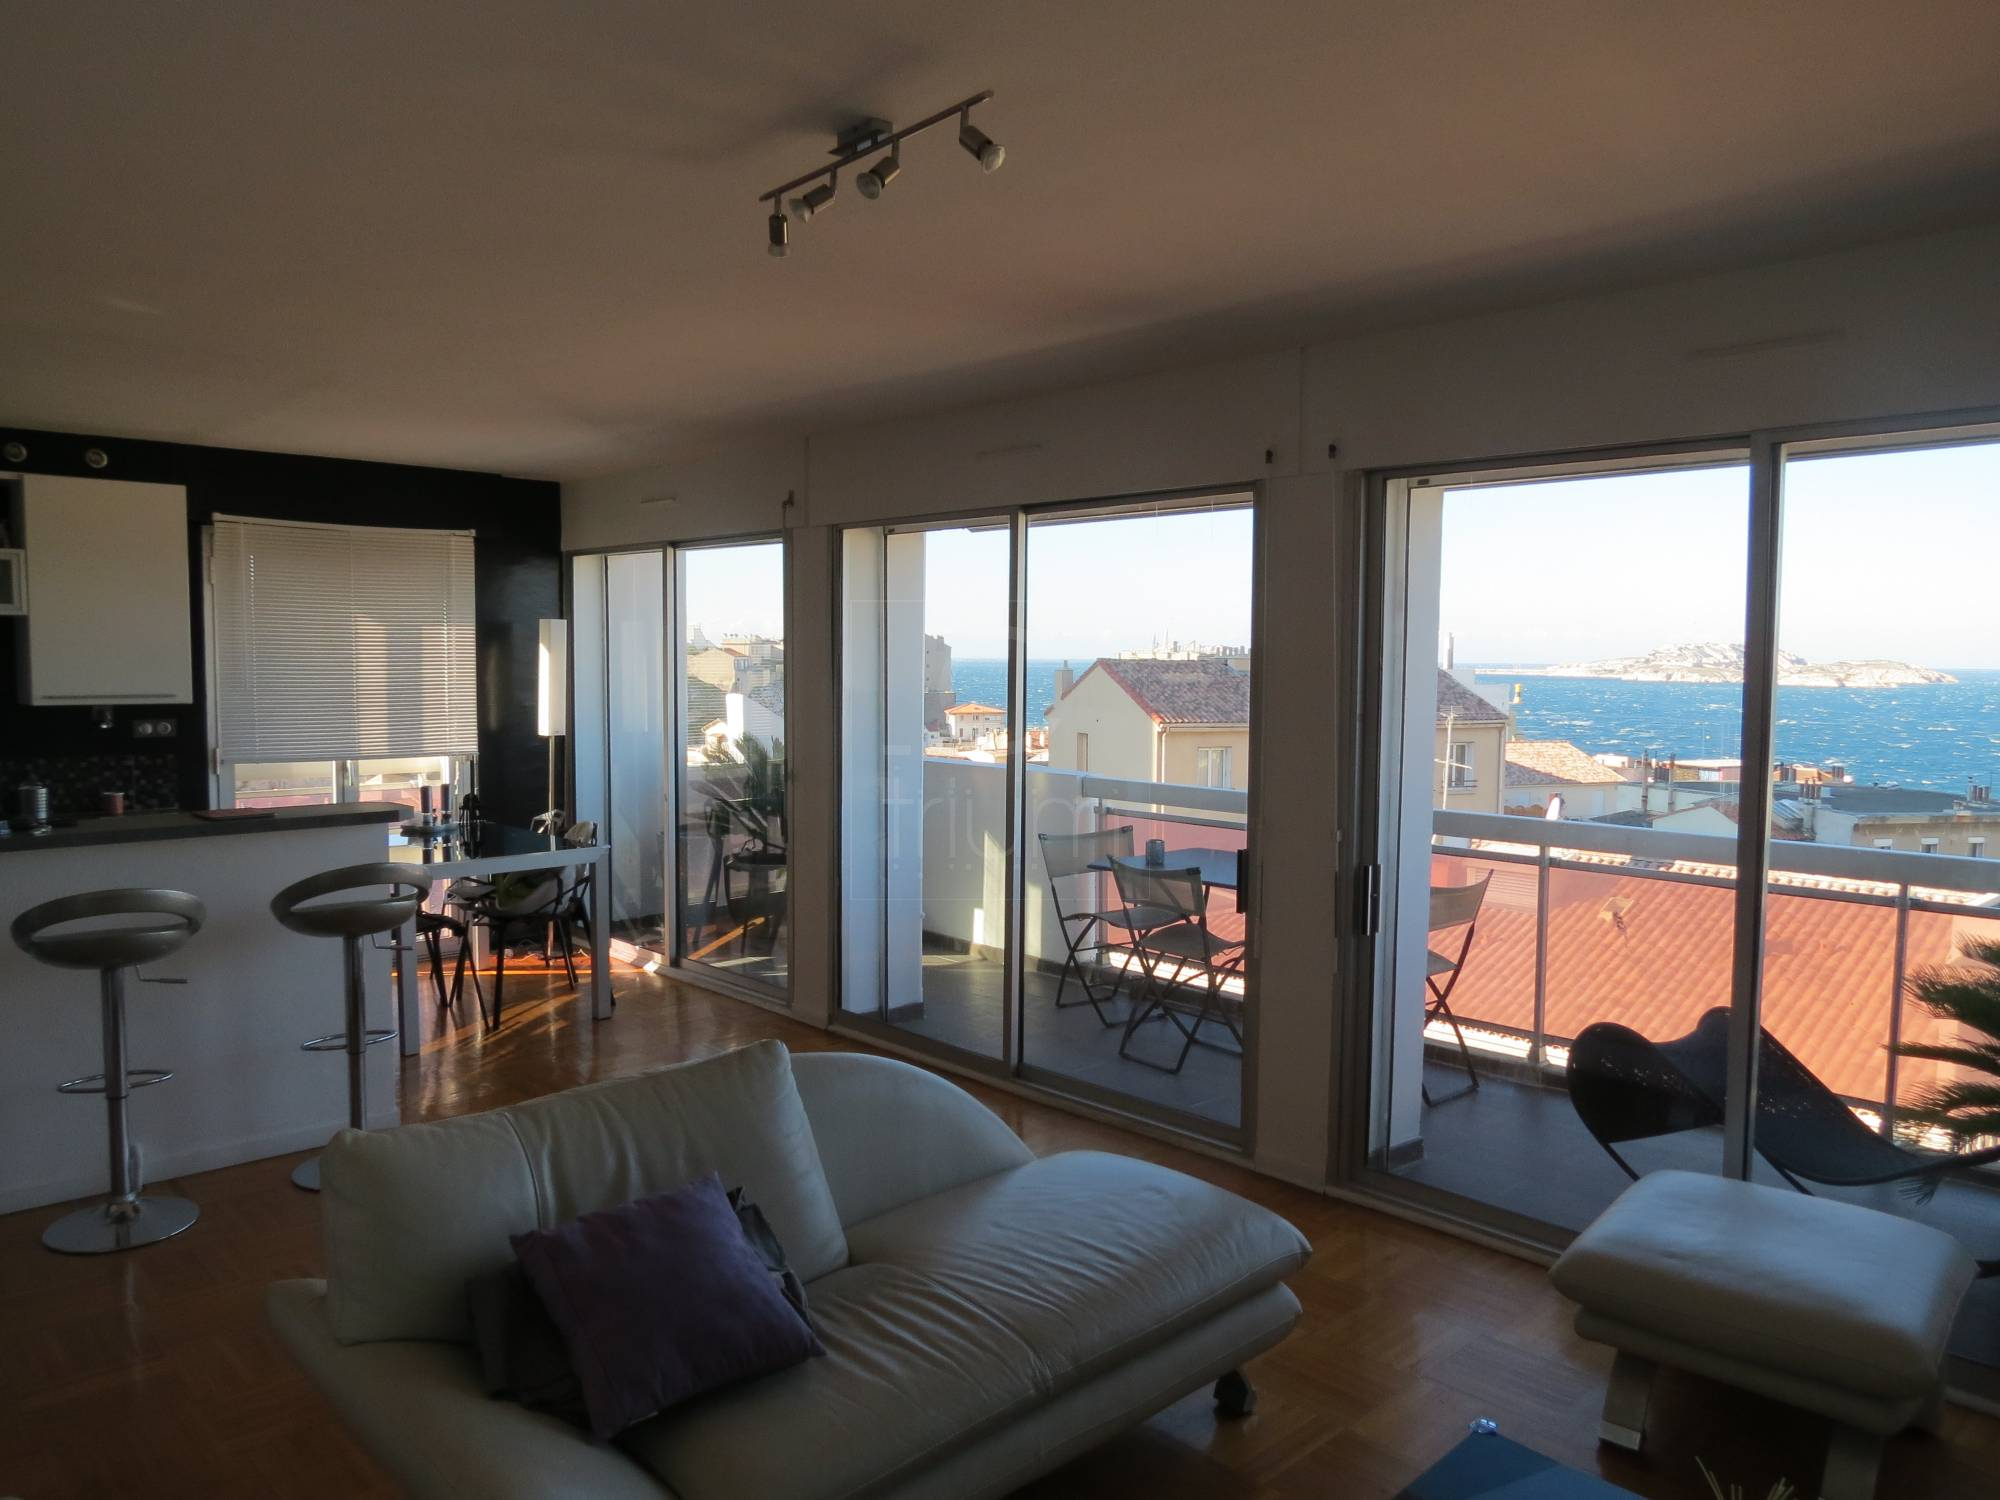 Vente appartement t5 f5 marseille 7eme vallon des auffes for Location garage marseille 7eme